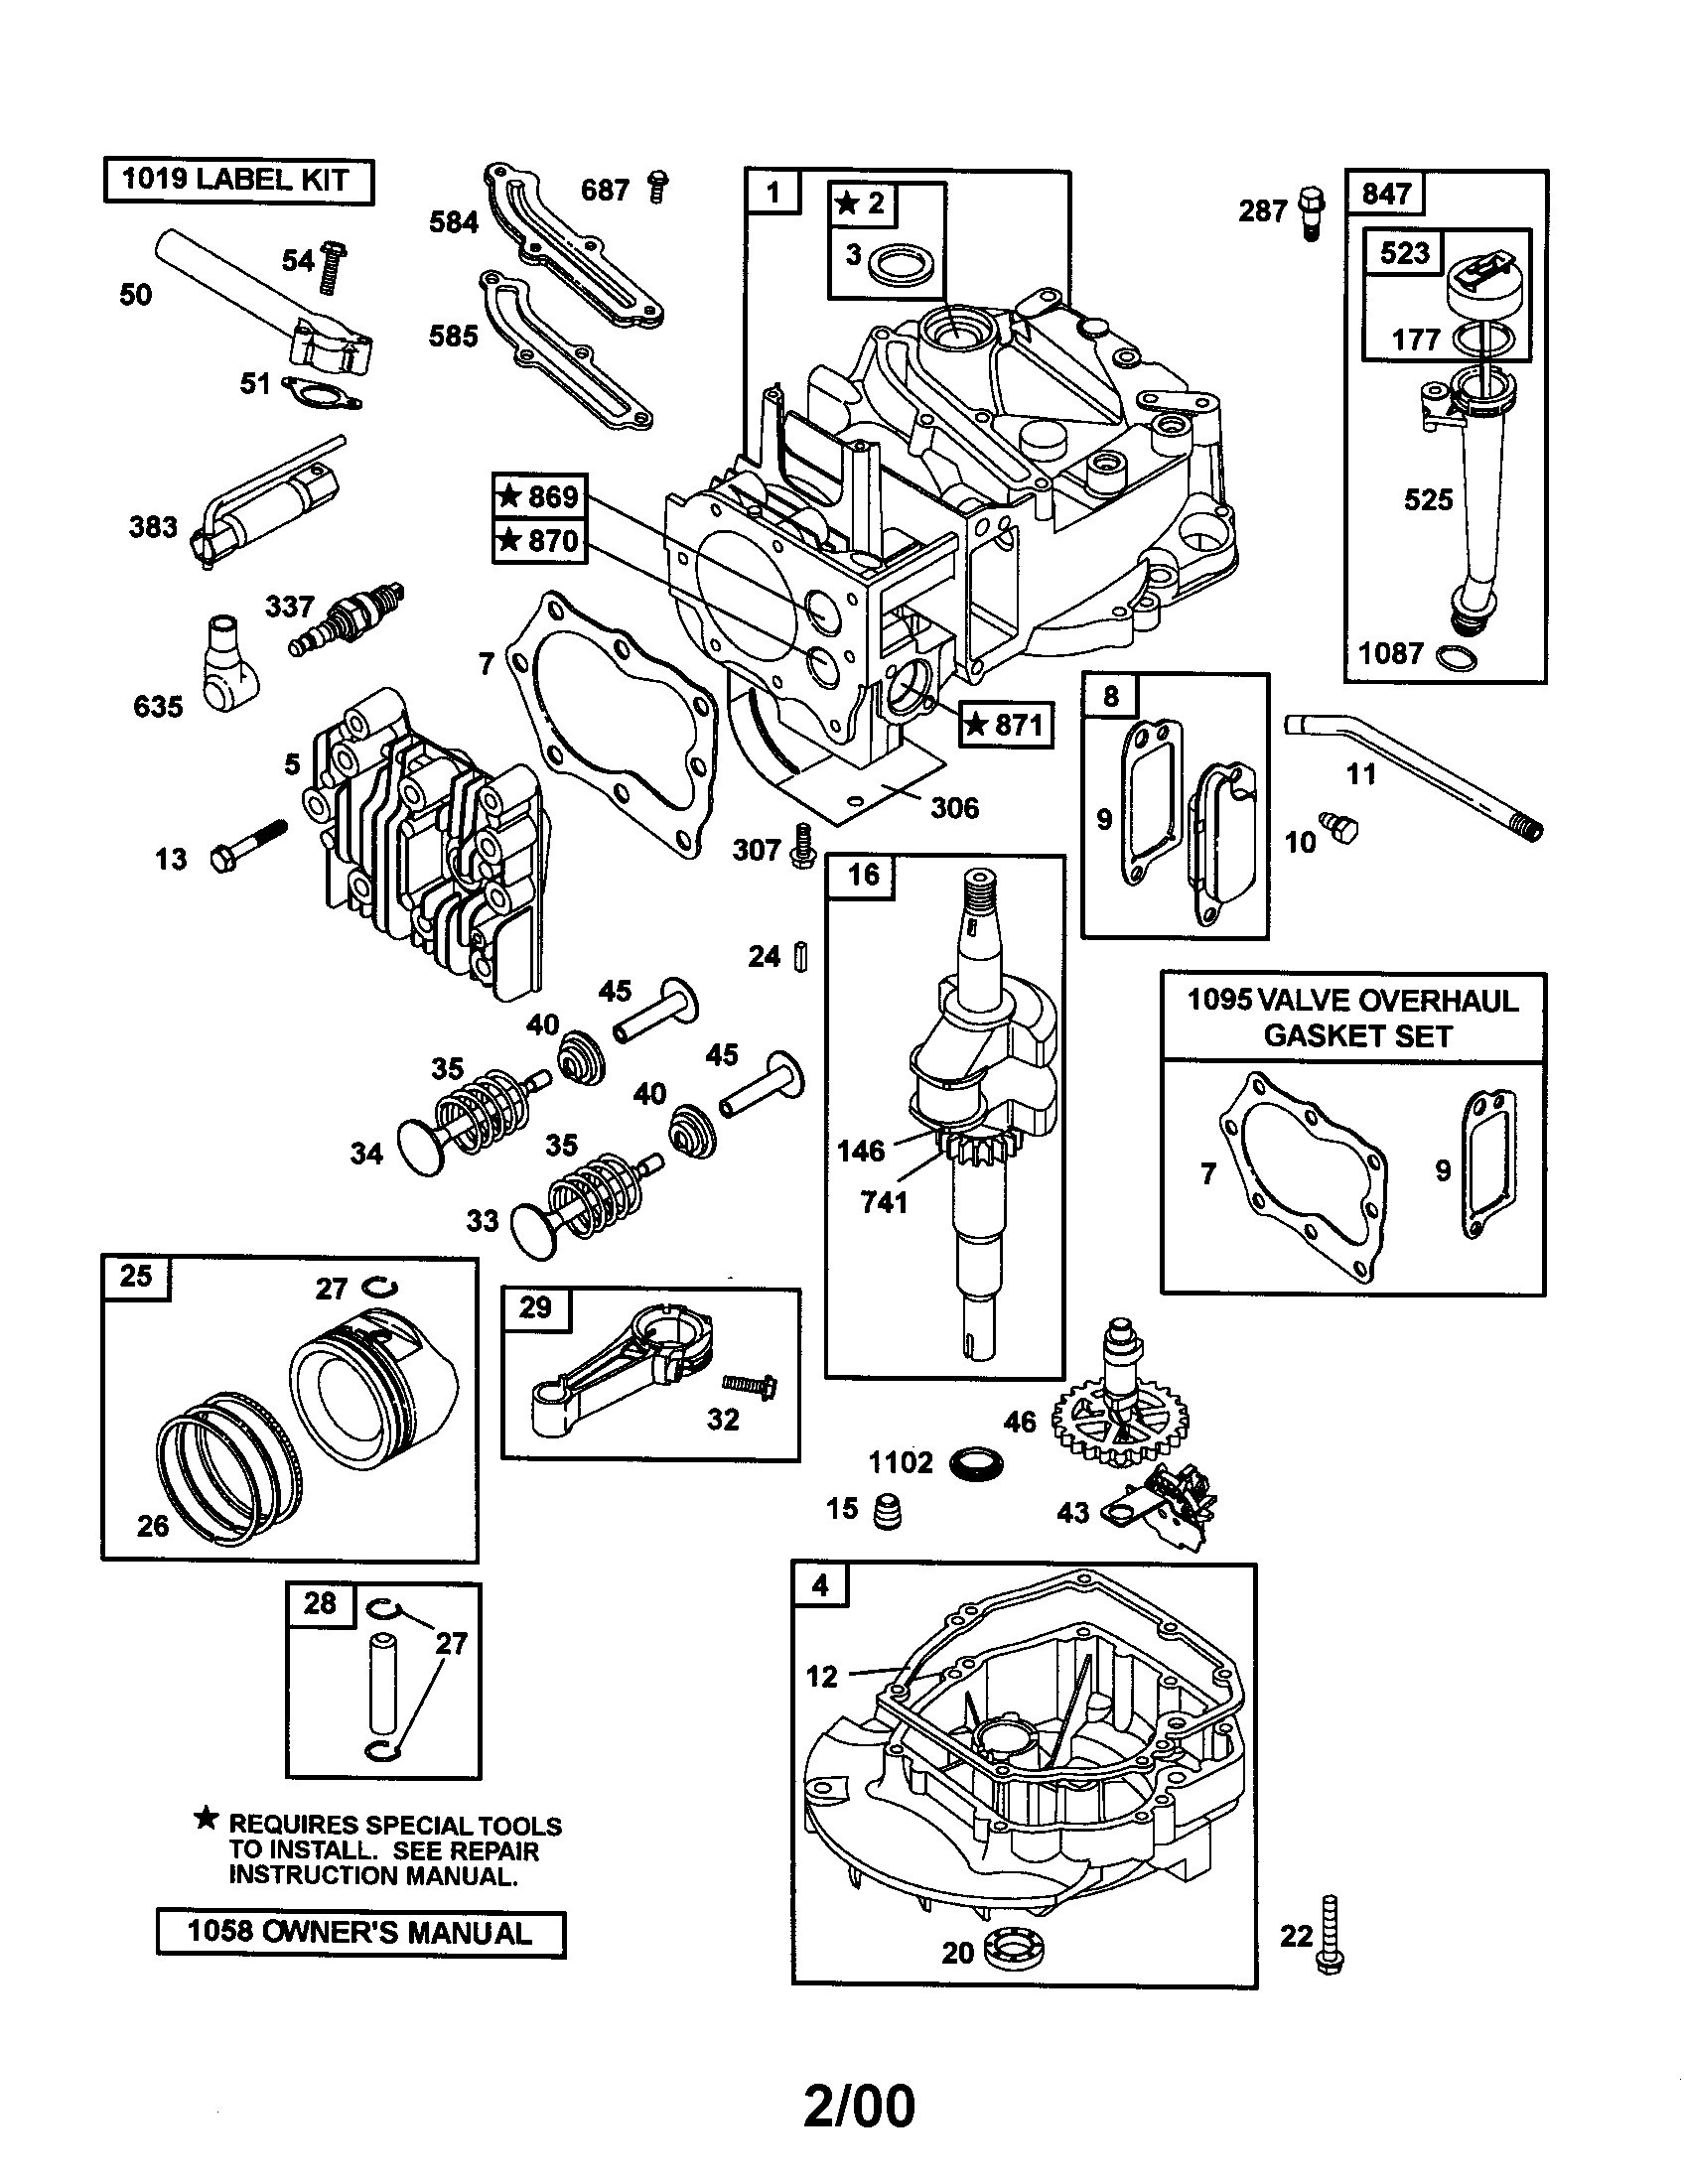 Volvo S80 Engine Components Diagram Schematics Wiring Diagrams 2001 Toyota Corolla Vacuum 2005 V70 Parts Shifter House Symbols U2022 Rh Maxturner Co